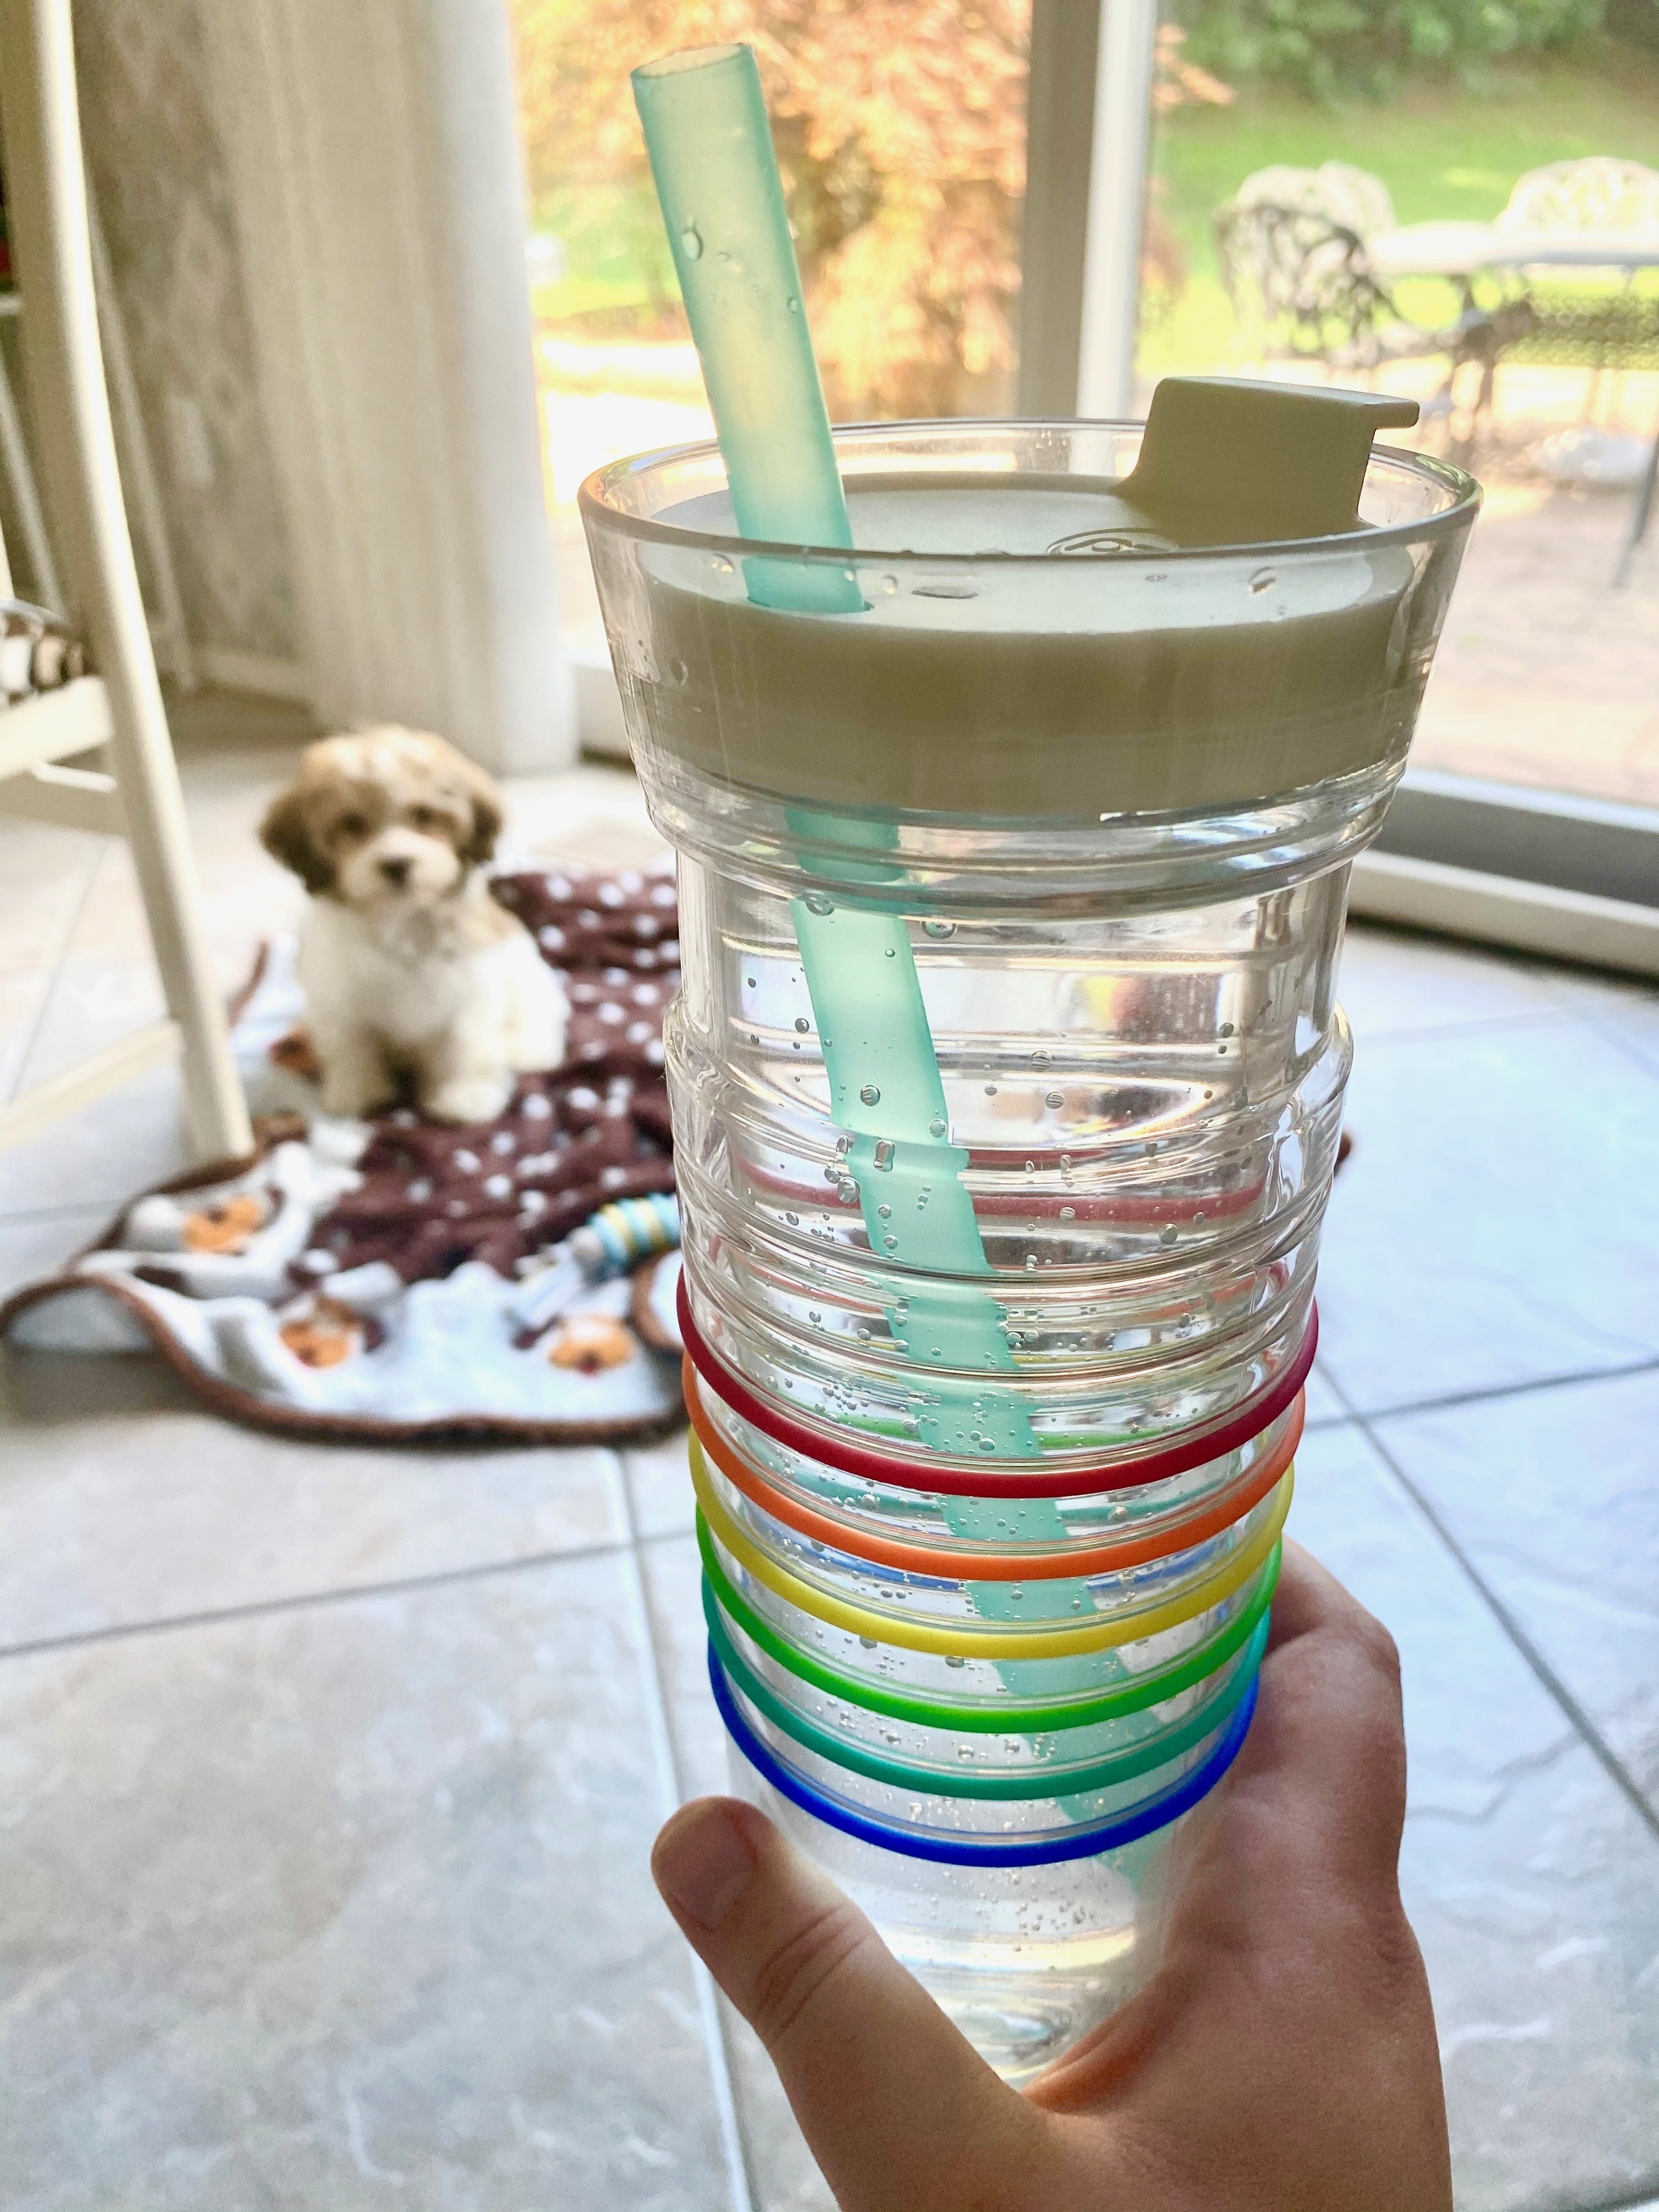 buzzfeed writer holding a clear water bottle with colorful rubber bands around it